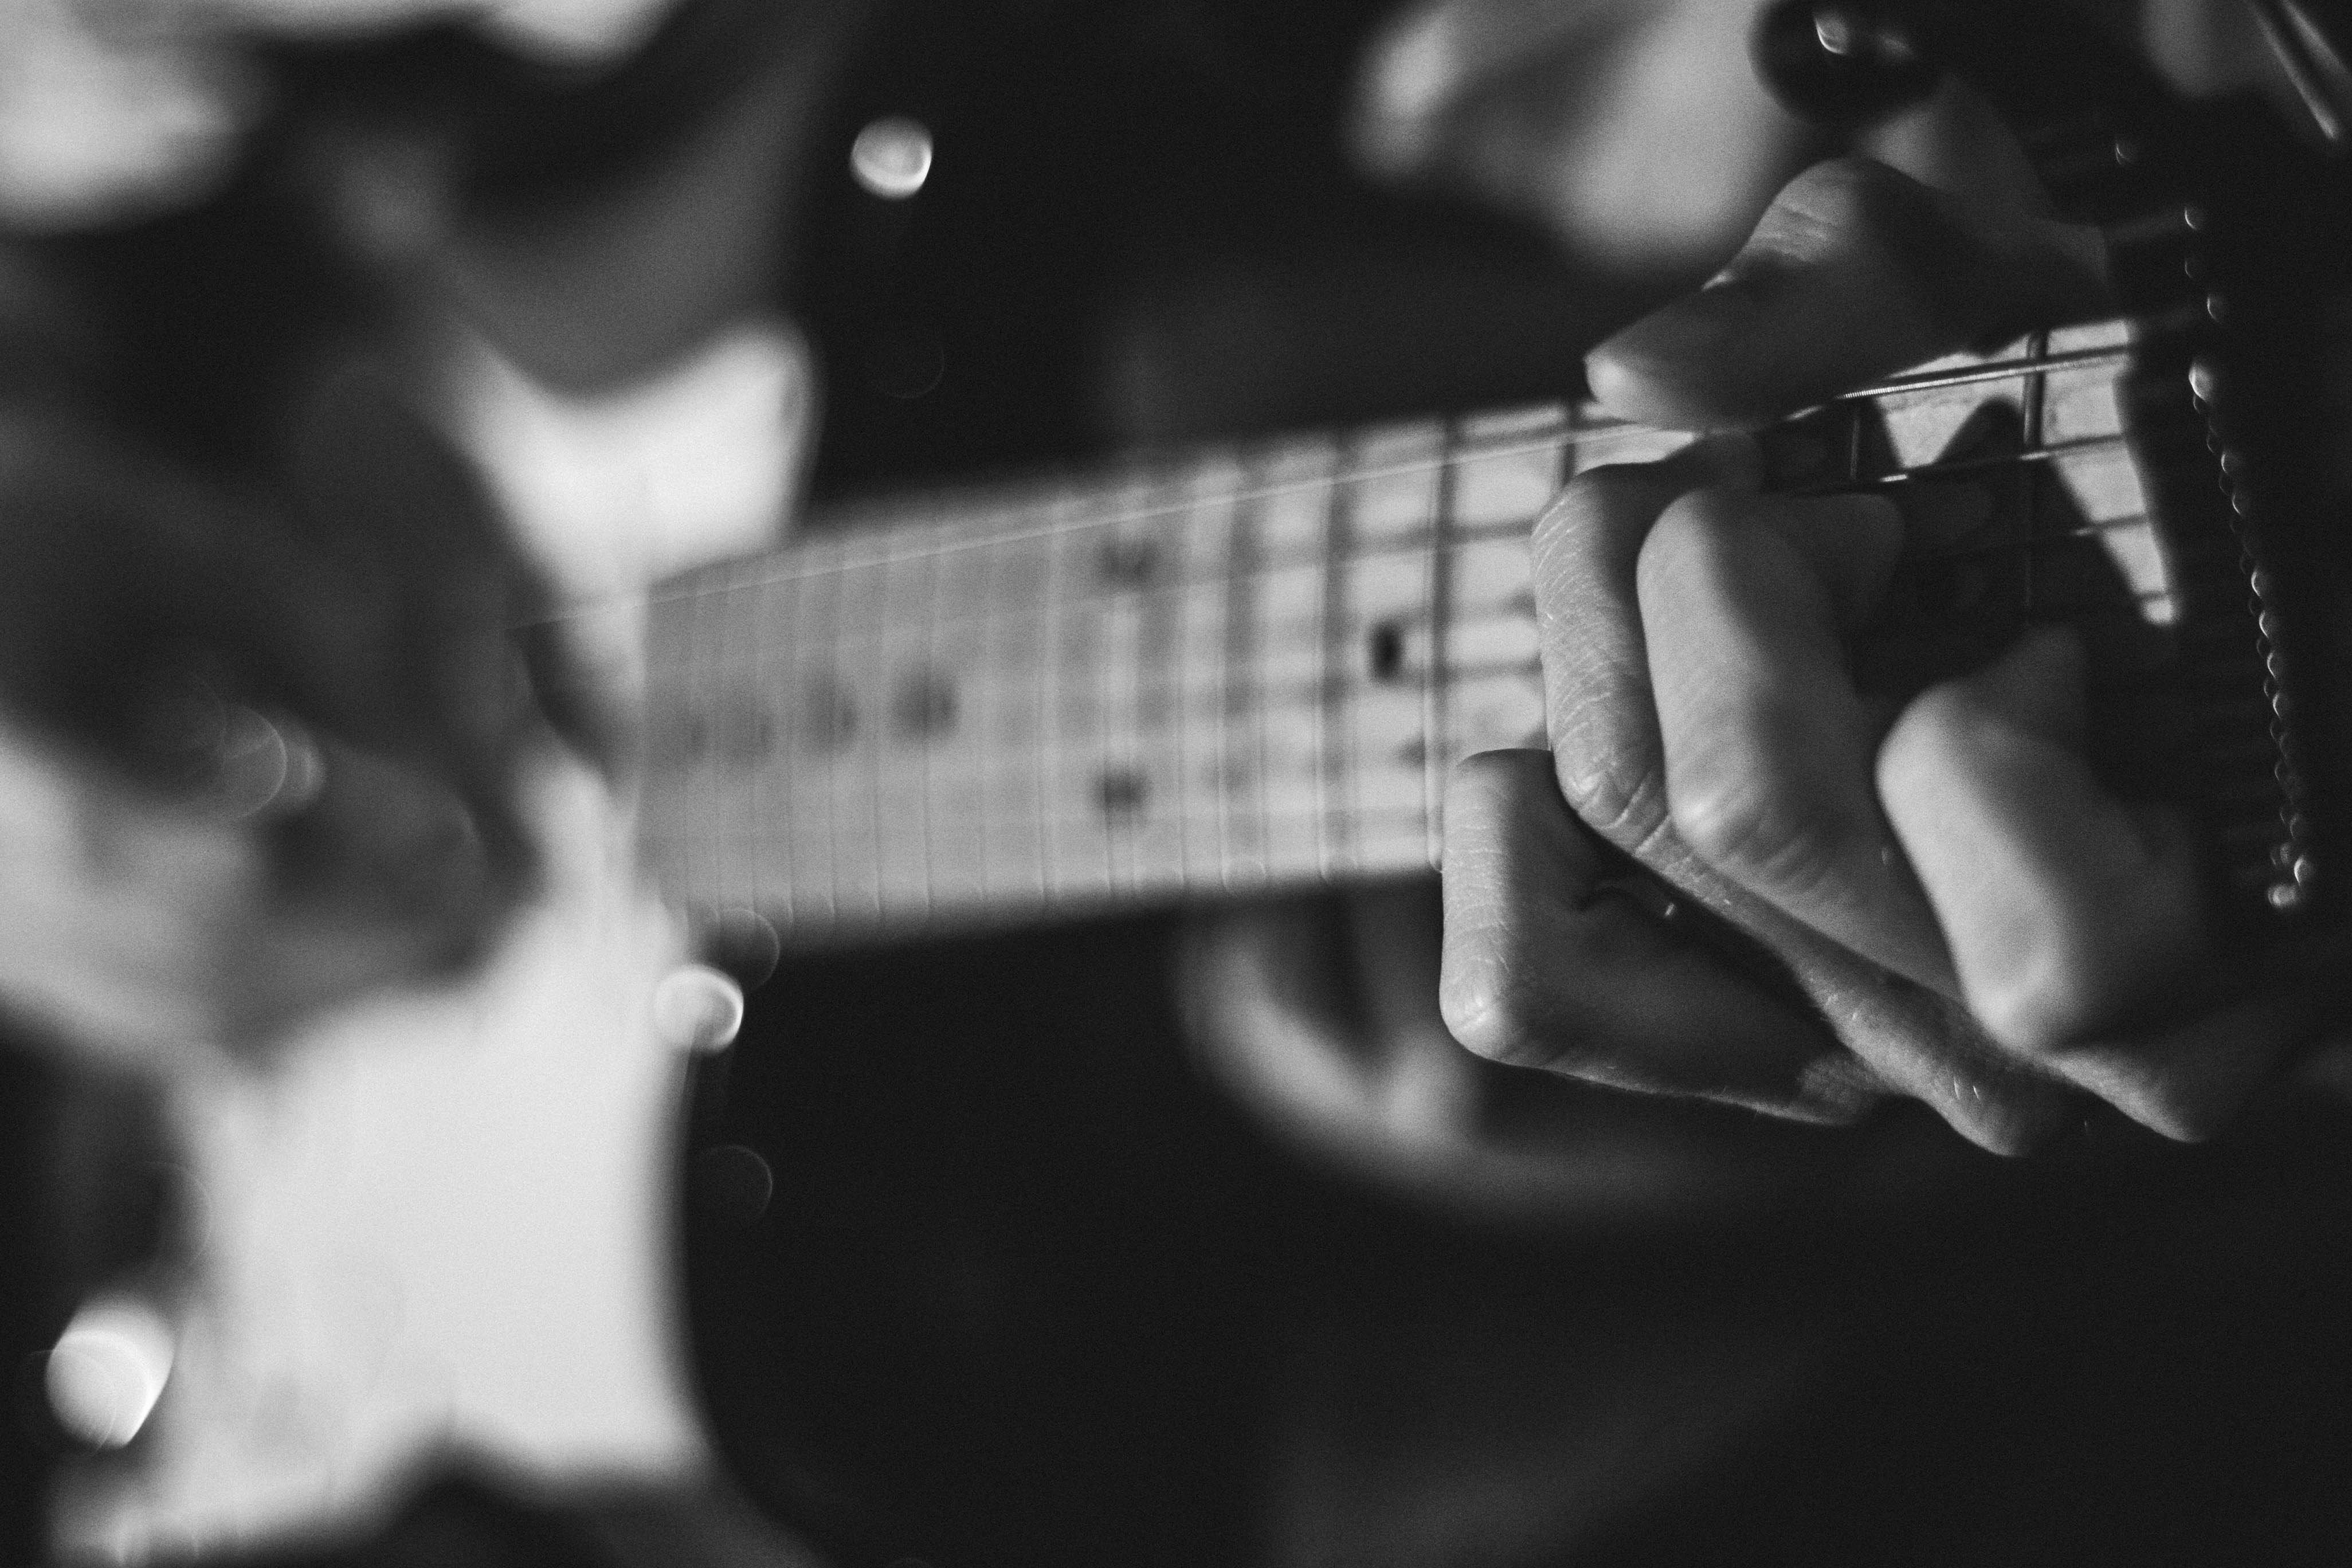 A black-and-white close-up of a guitar fretboard held by a player